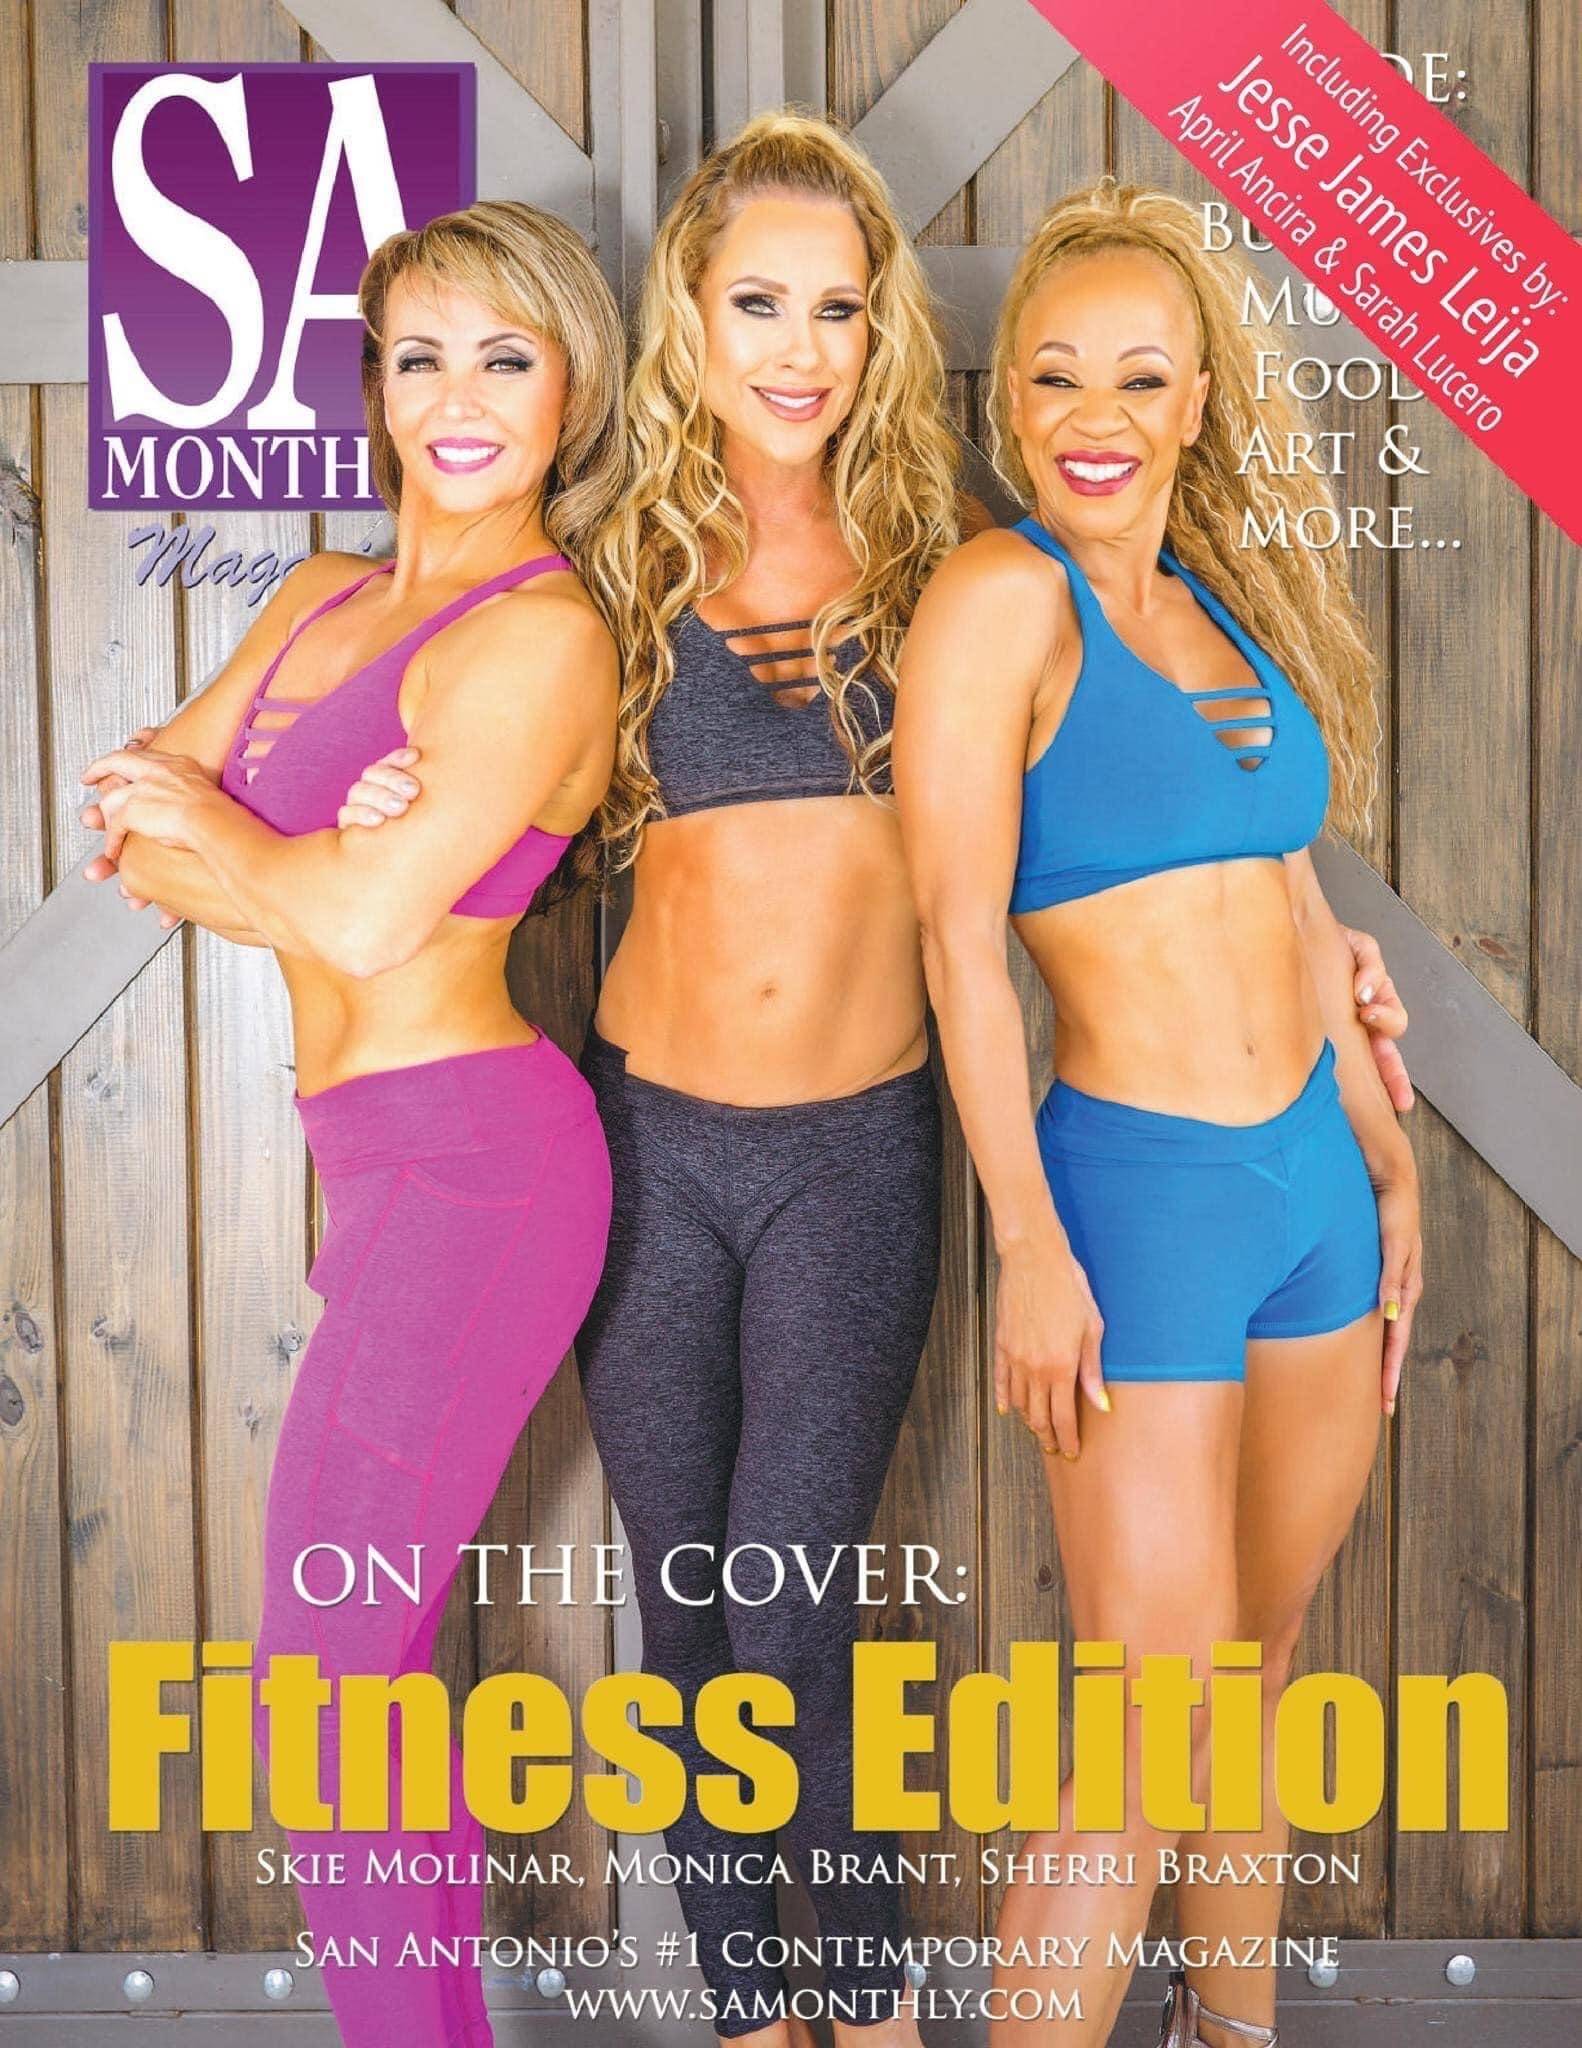 women's fitness san antonio, tx, women only boot camp san antonio, tx, sherri braxton